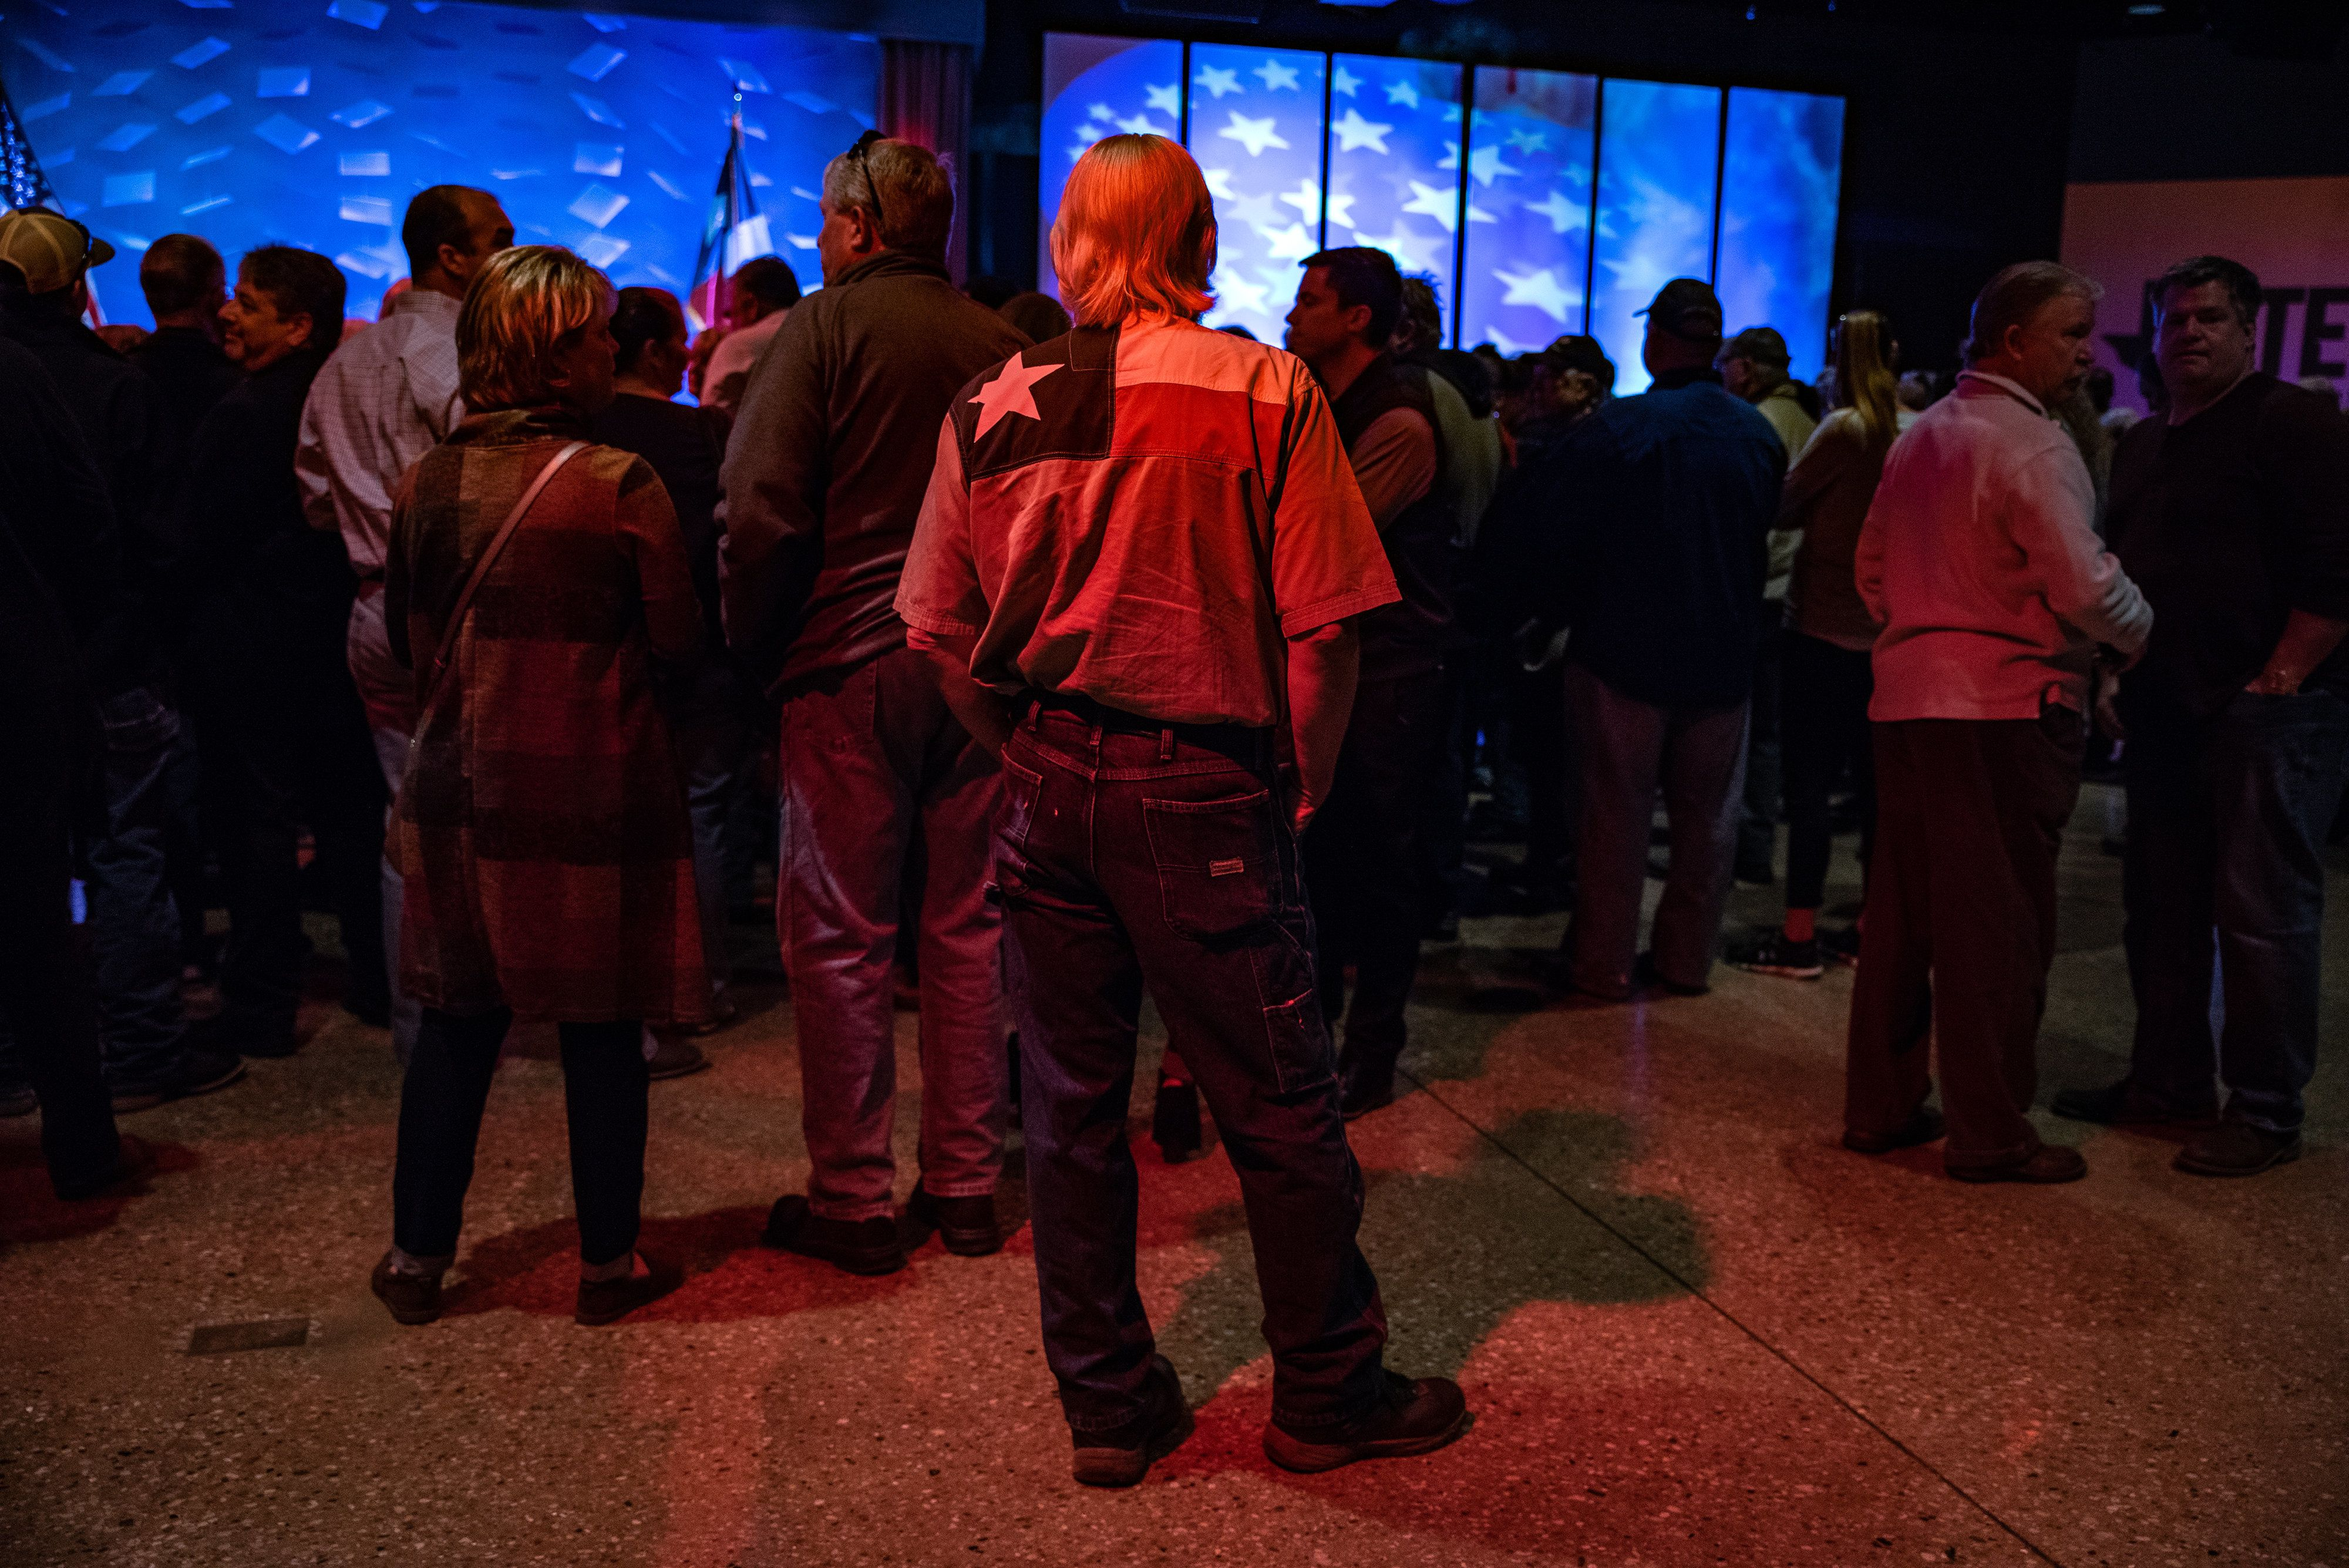 Attendees wait for the start of a campaign rally for Senator Ted Cruz, a Republican from Texas, in Fort Worth, Texas, U.S., on Friday, Nov. 2, 2018. Cruz is holding on to a narrow lead over Democratic challengerBeto O'Rourkeamong likely voters. Photographer: Sergio Flores/Bloomberg via Getty Images